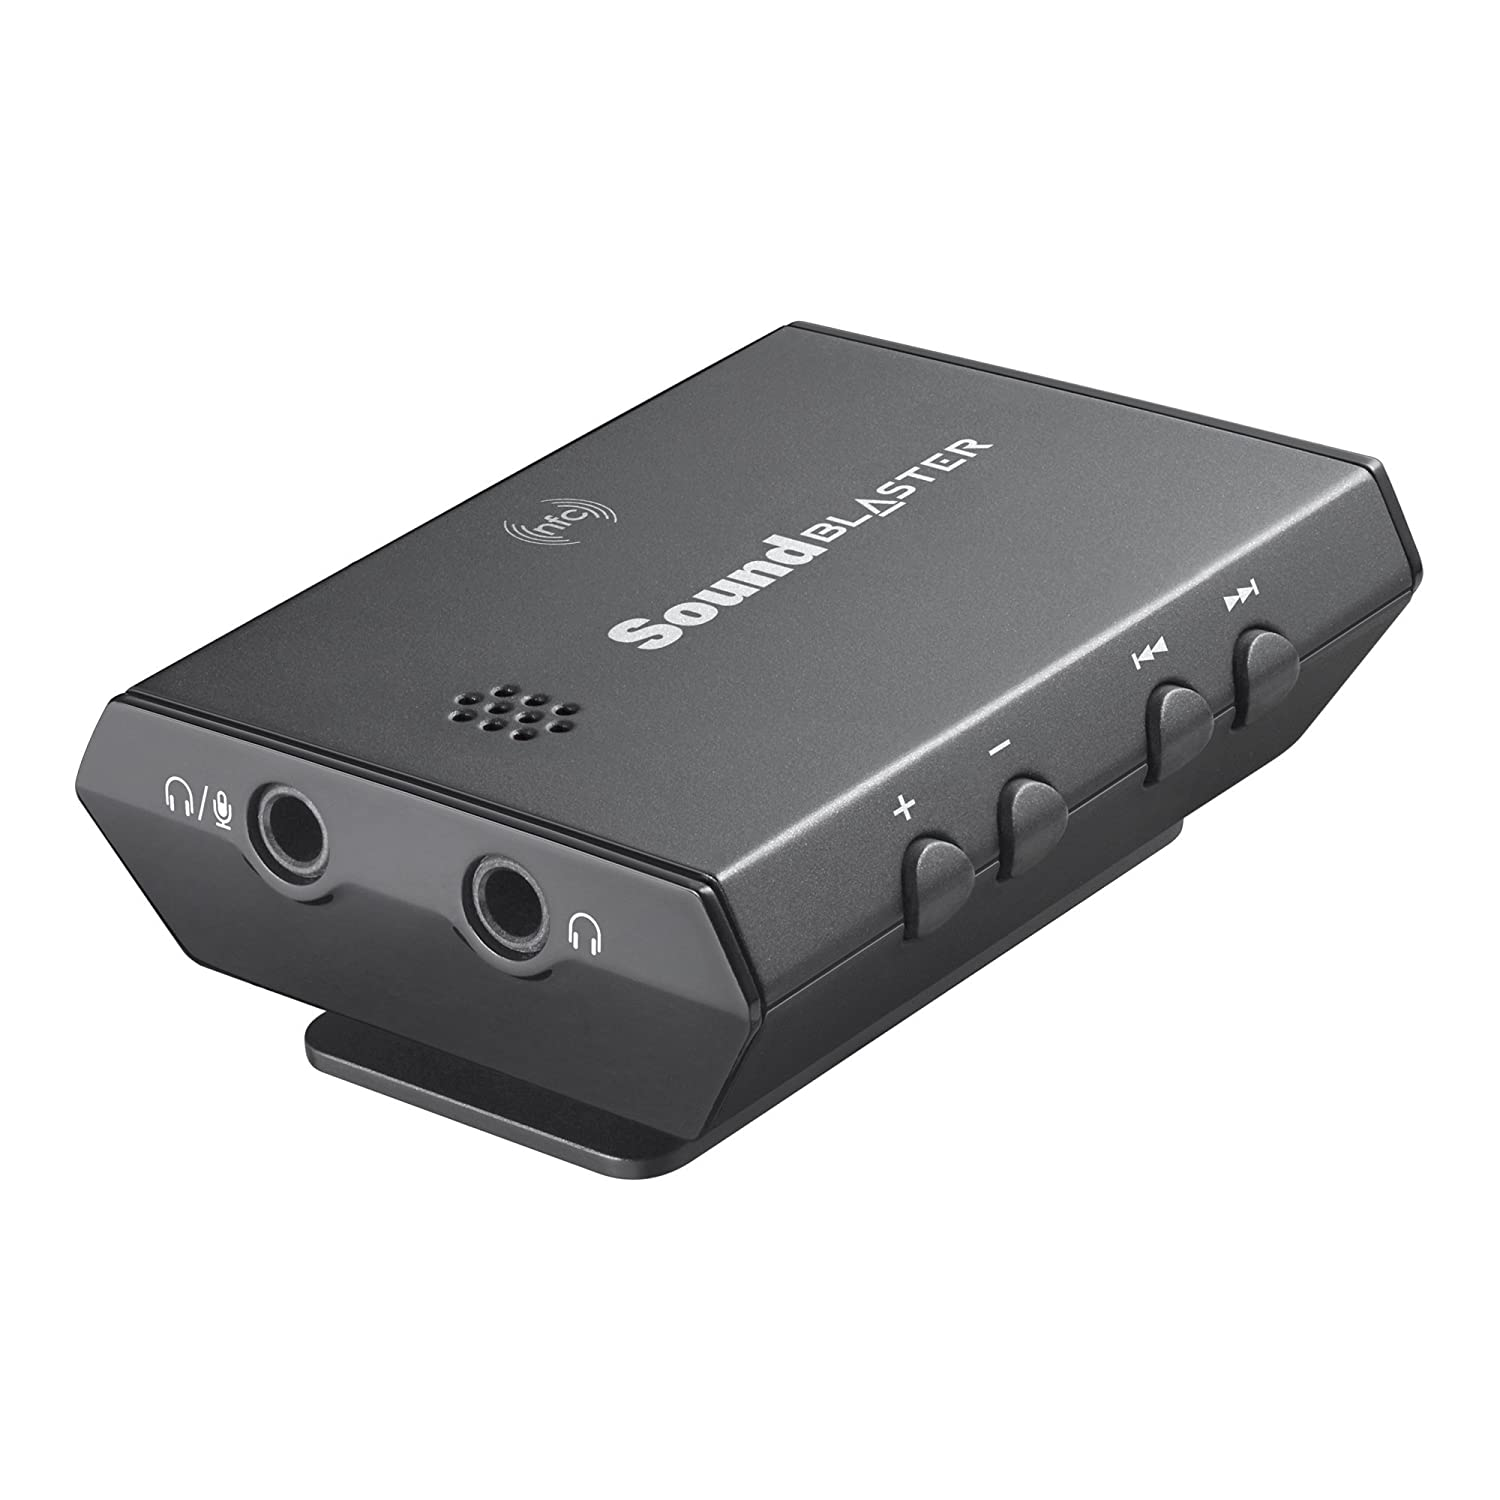 Creative Sound Blaster E3 Portable USB DAC Headphone Amplifier